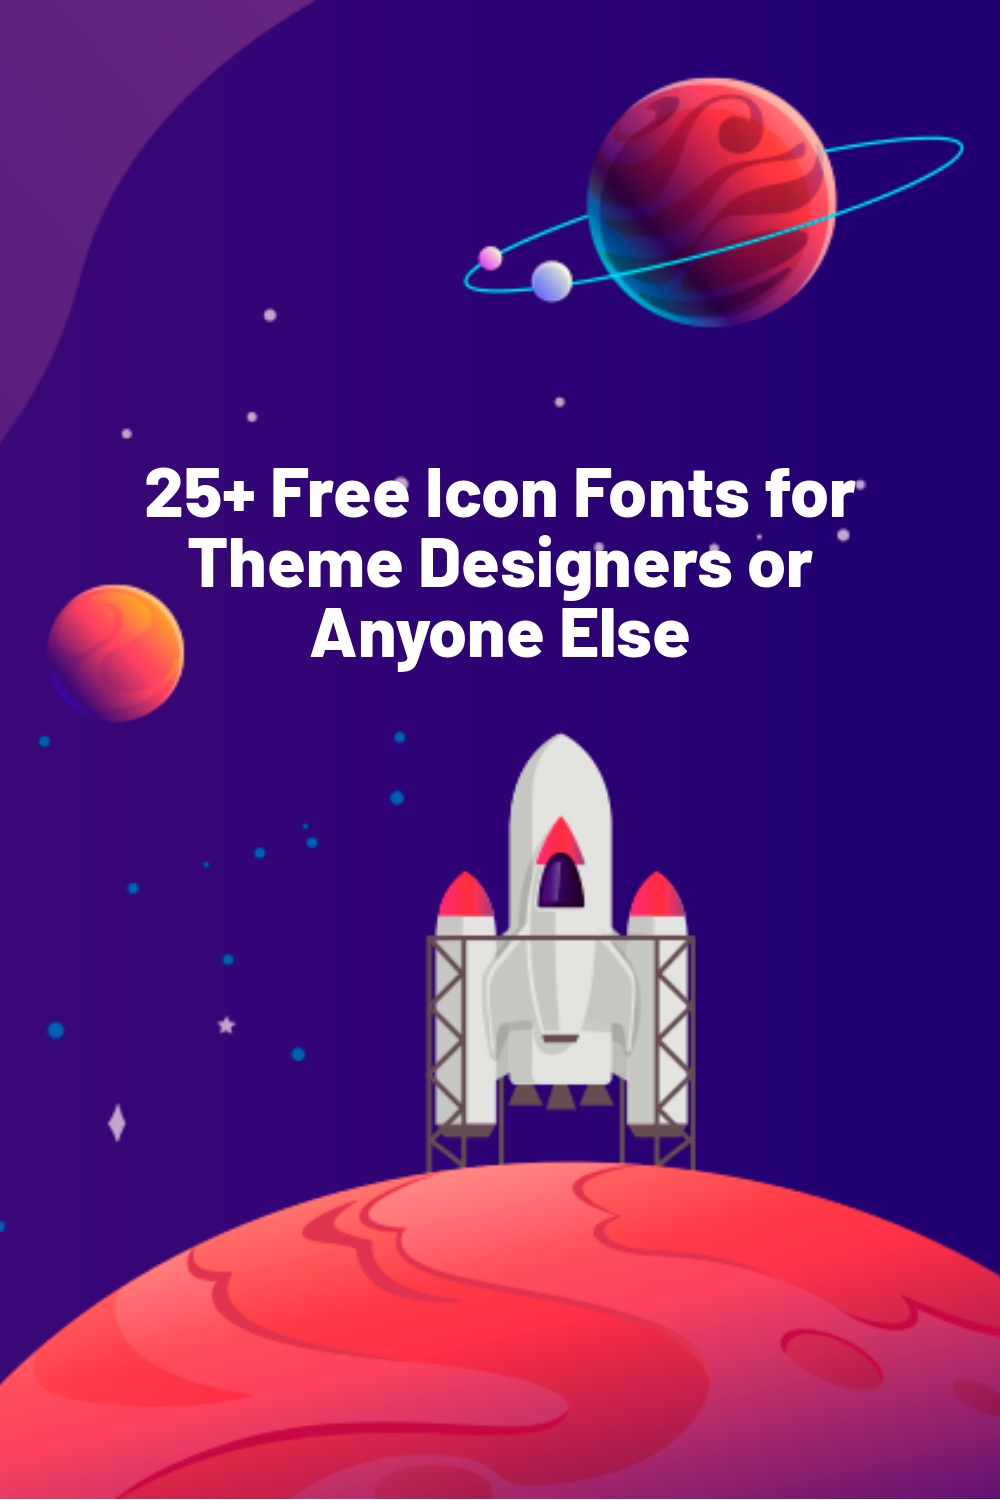 25+ Free Icon Fonts for Theme Designers or Anyone Else